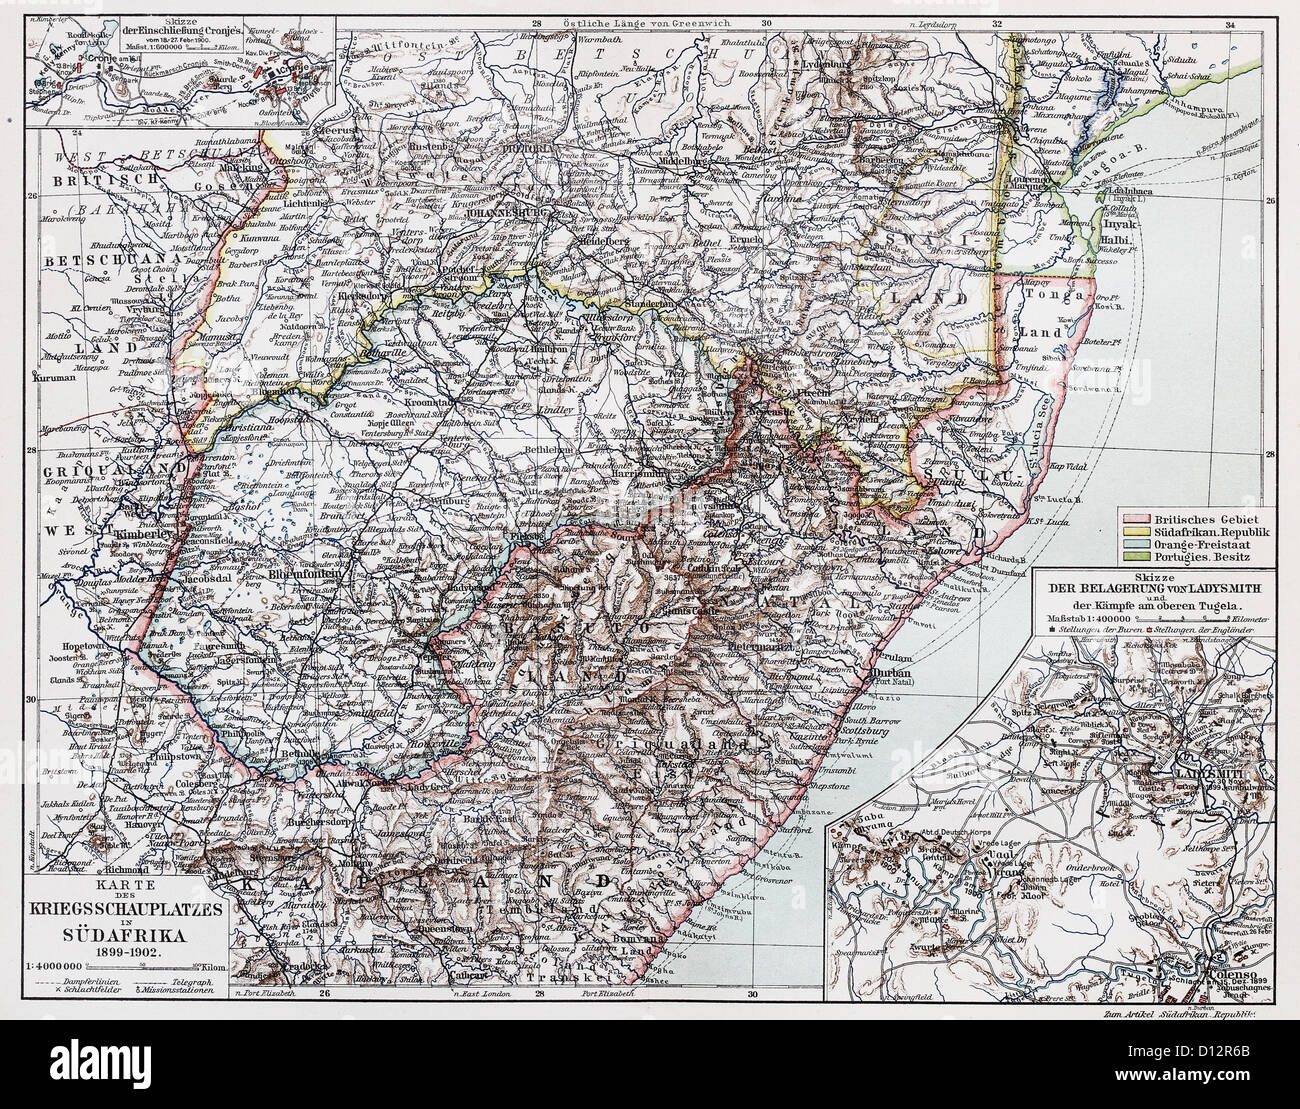 Vintage map of War theater in South Africa, period 1899-1902 - Stock Image